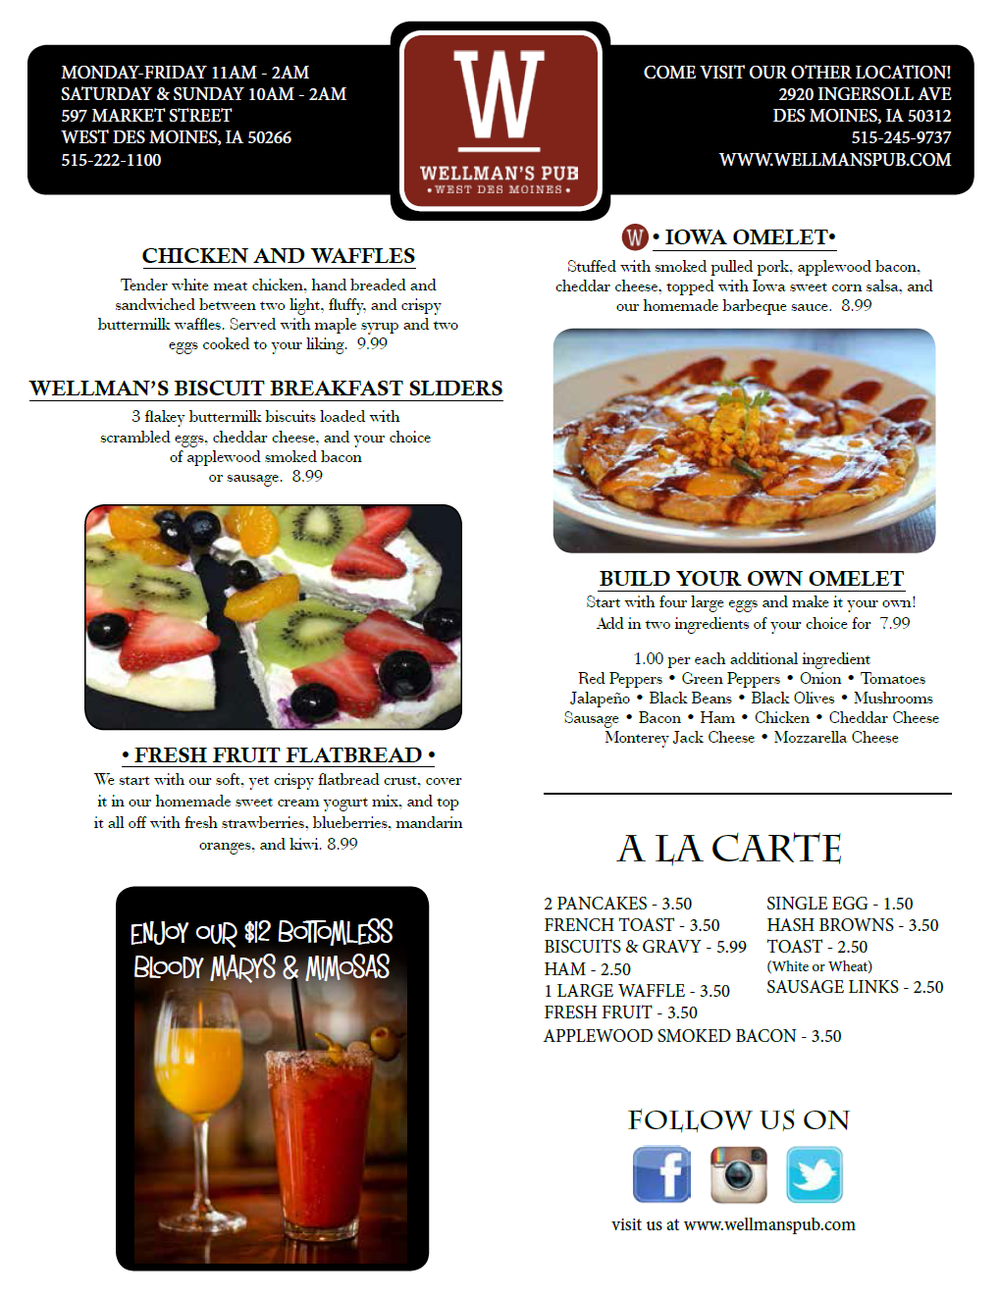 Wellman's Pub & Rooftop Brunch Menu P2.png